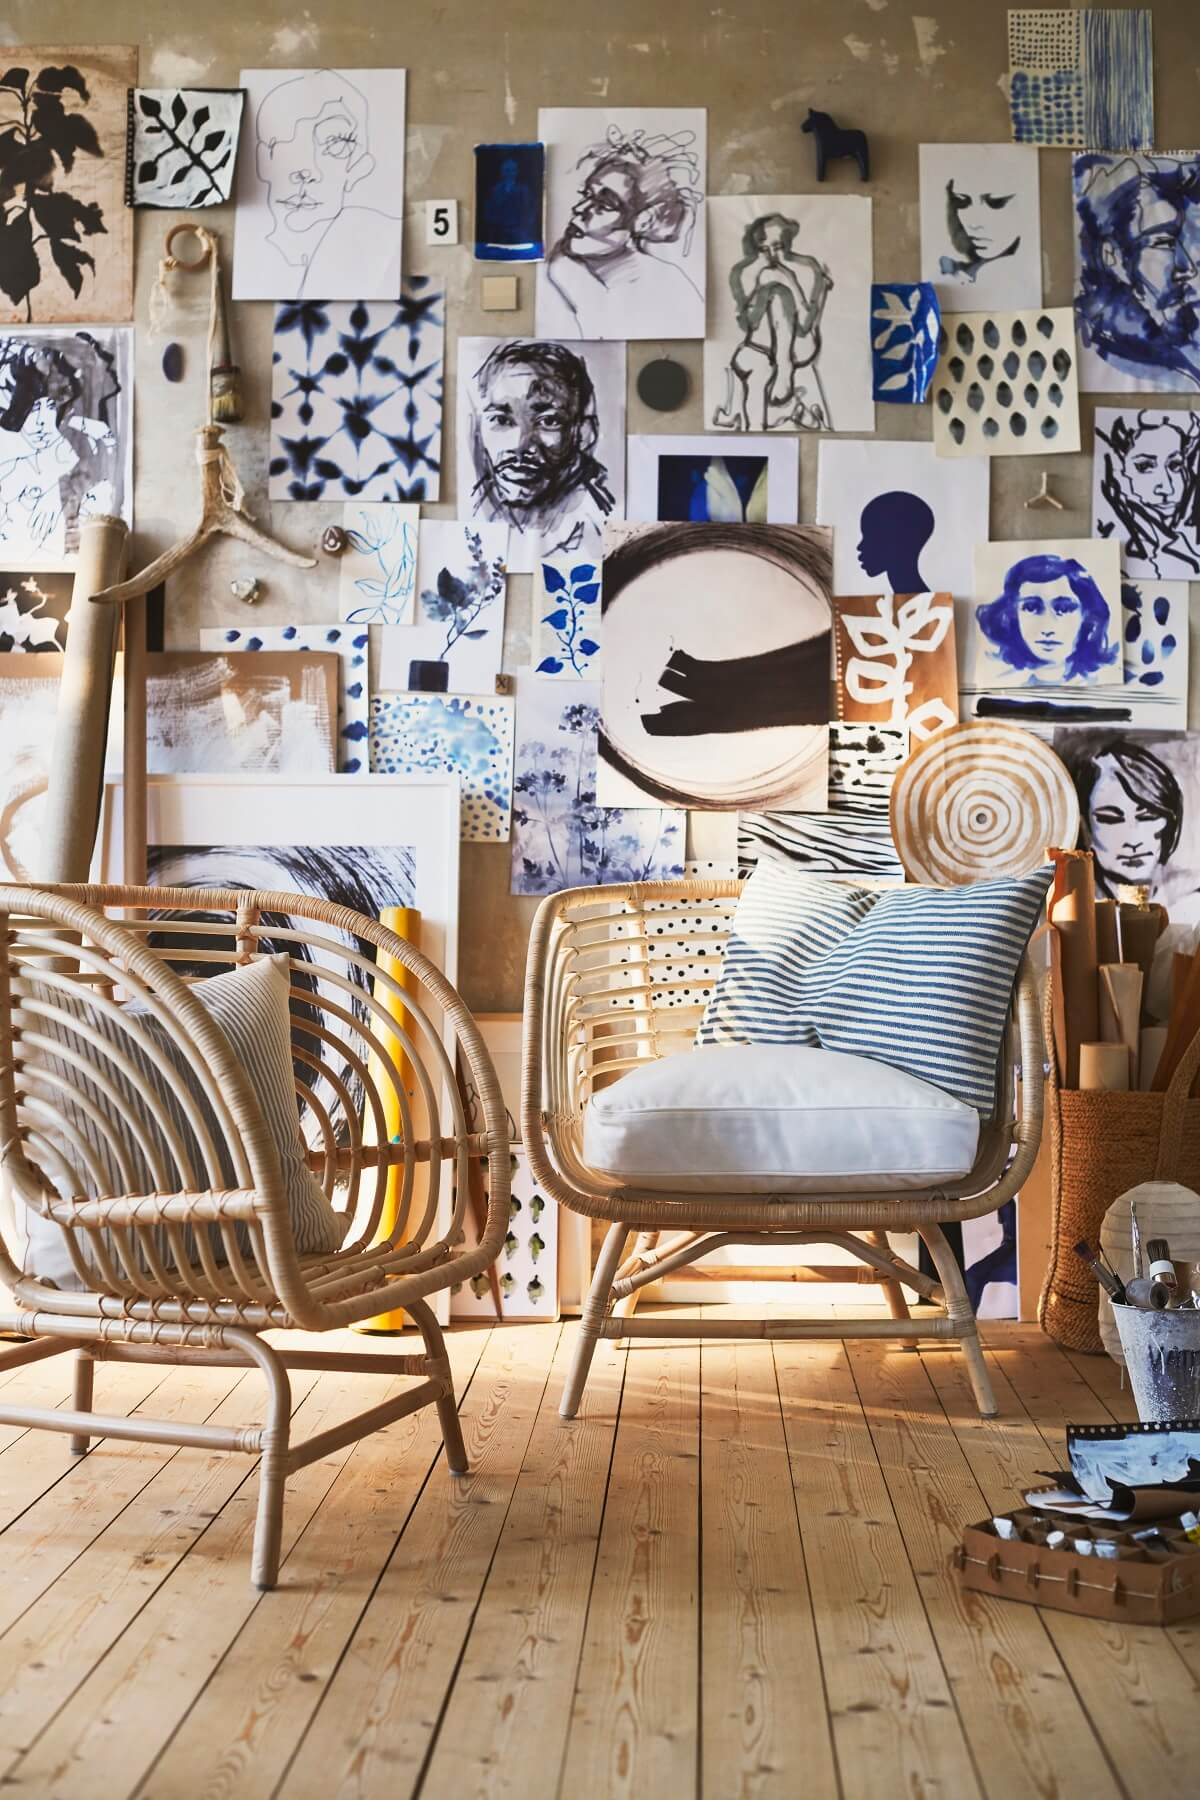 IKEA's New Product Launch Embraces Sustainability and Slow Living